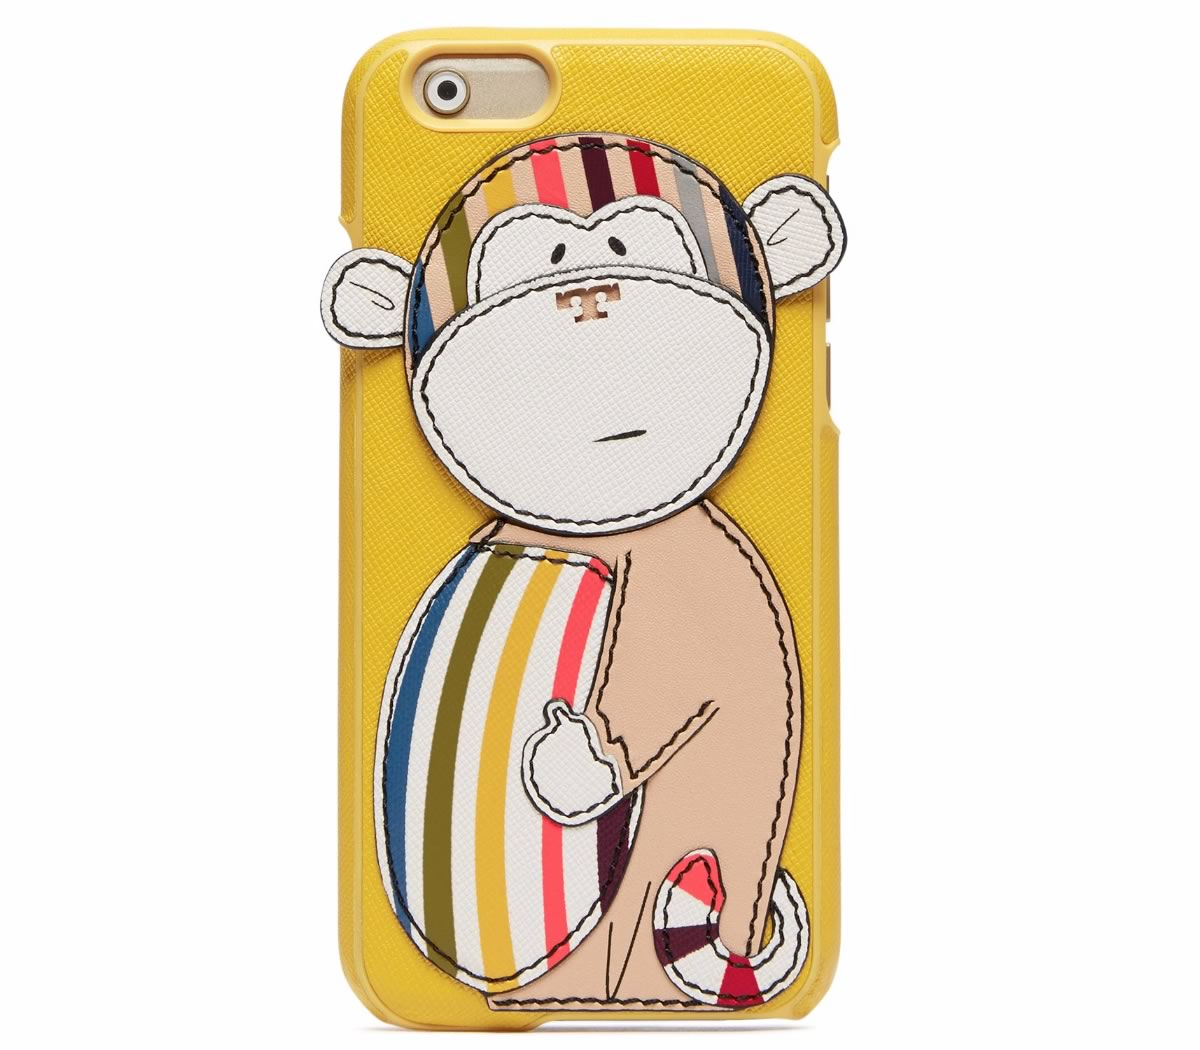 Tory Burch Monkey Applique Case for iPhone 6